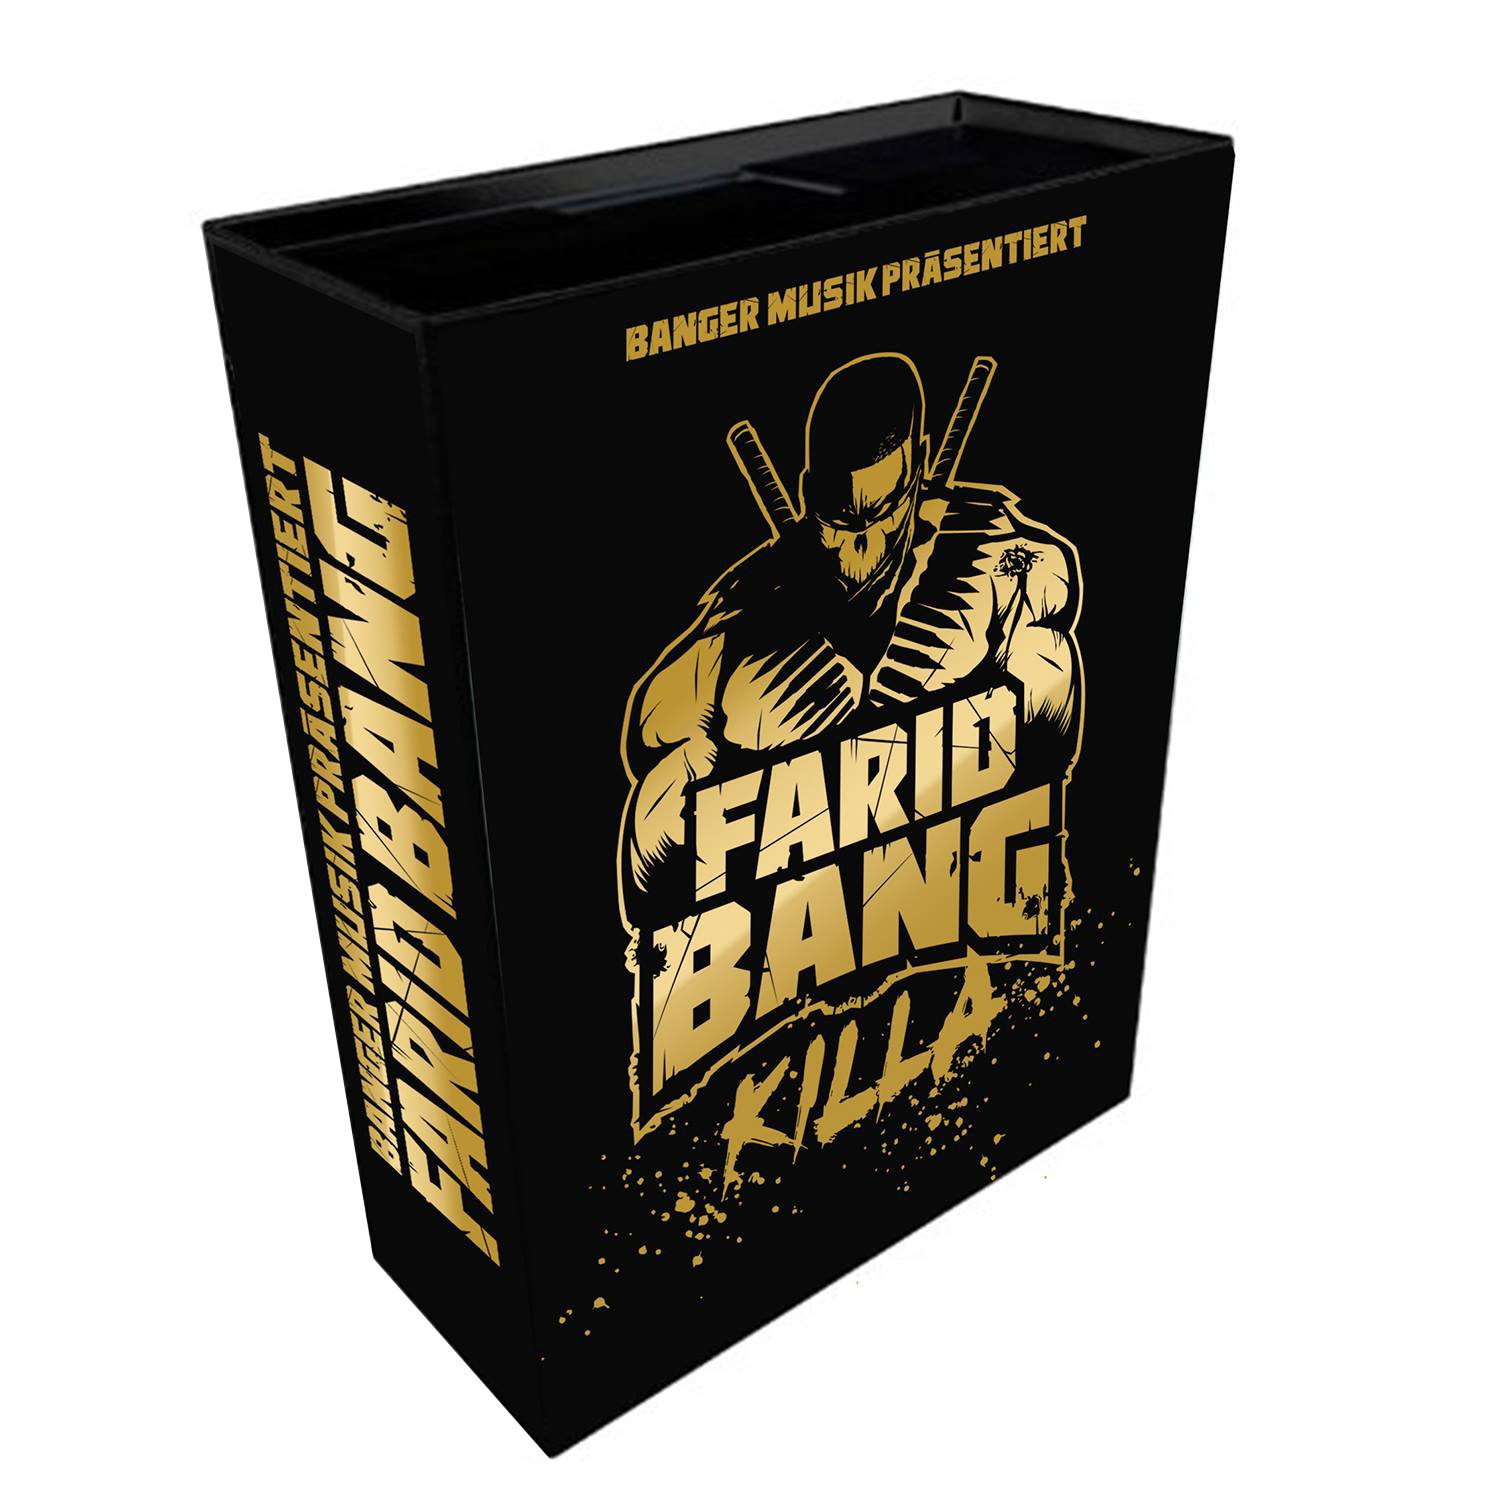 Farid Bang - Killa [Limited-Fan Edition inkl. 3 CDs, USB Stick, T-Shirt, Poster & Sticker]